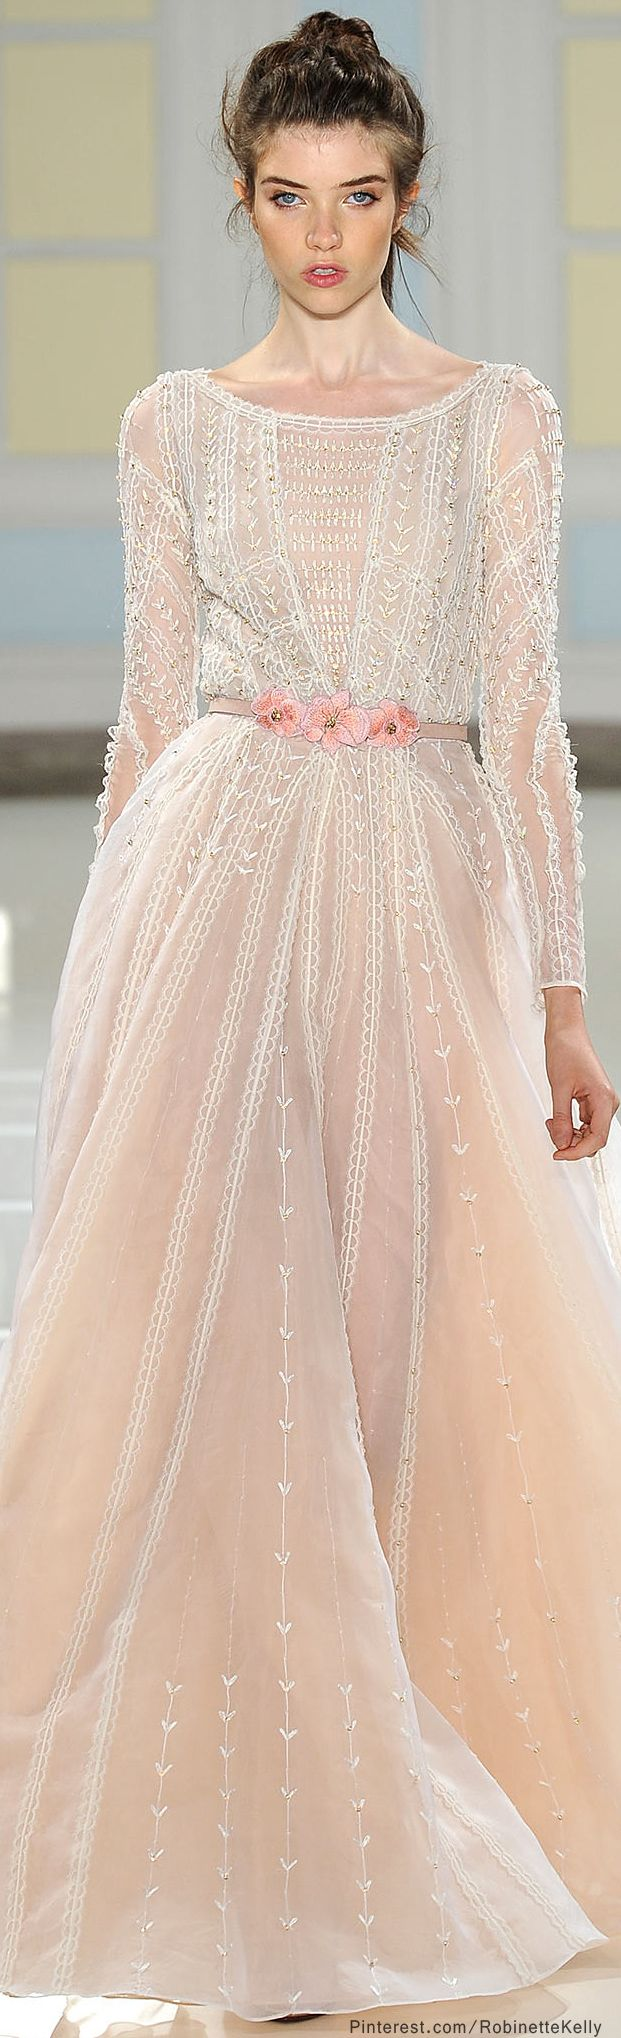 Temperley London: Temperley London